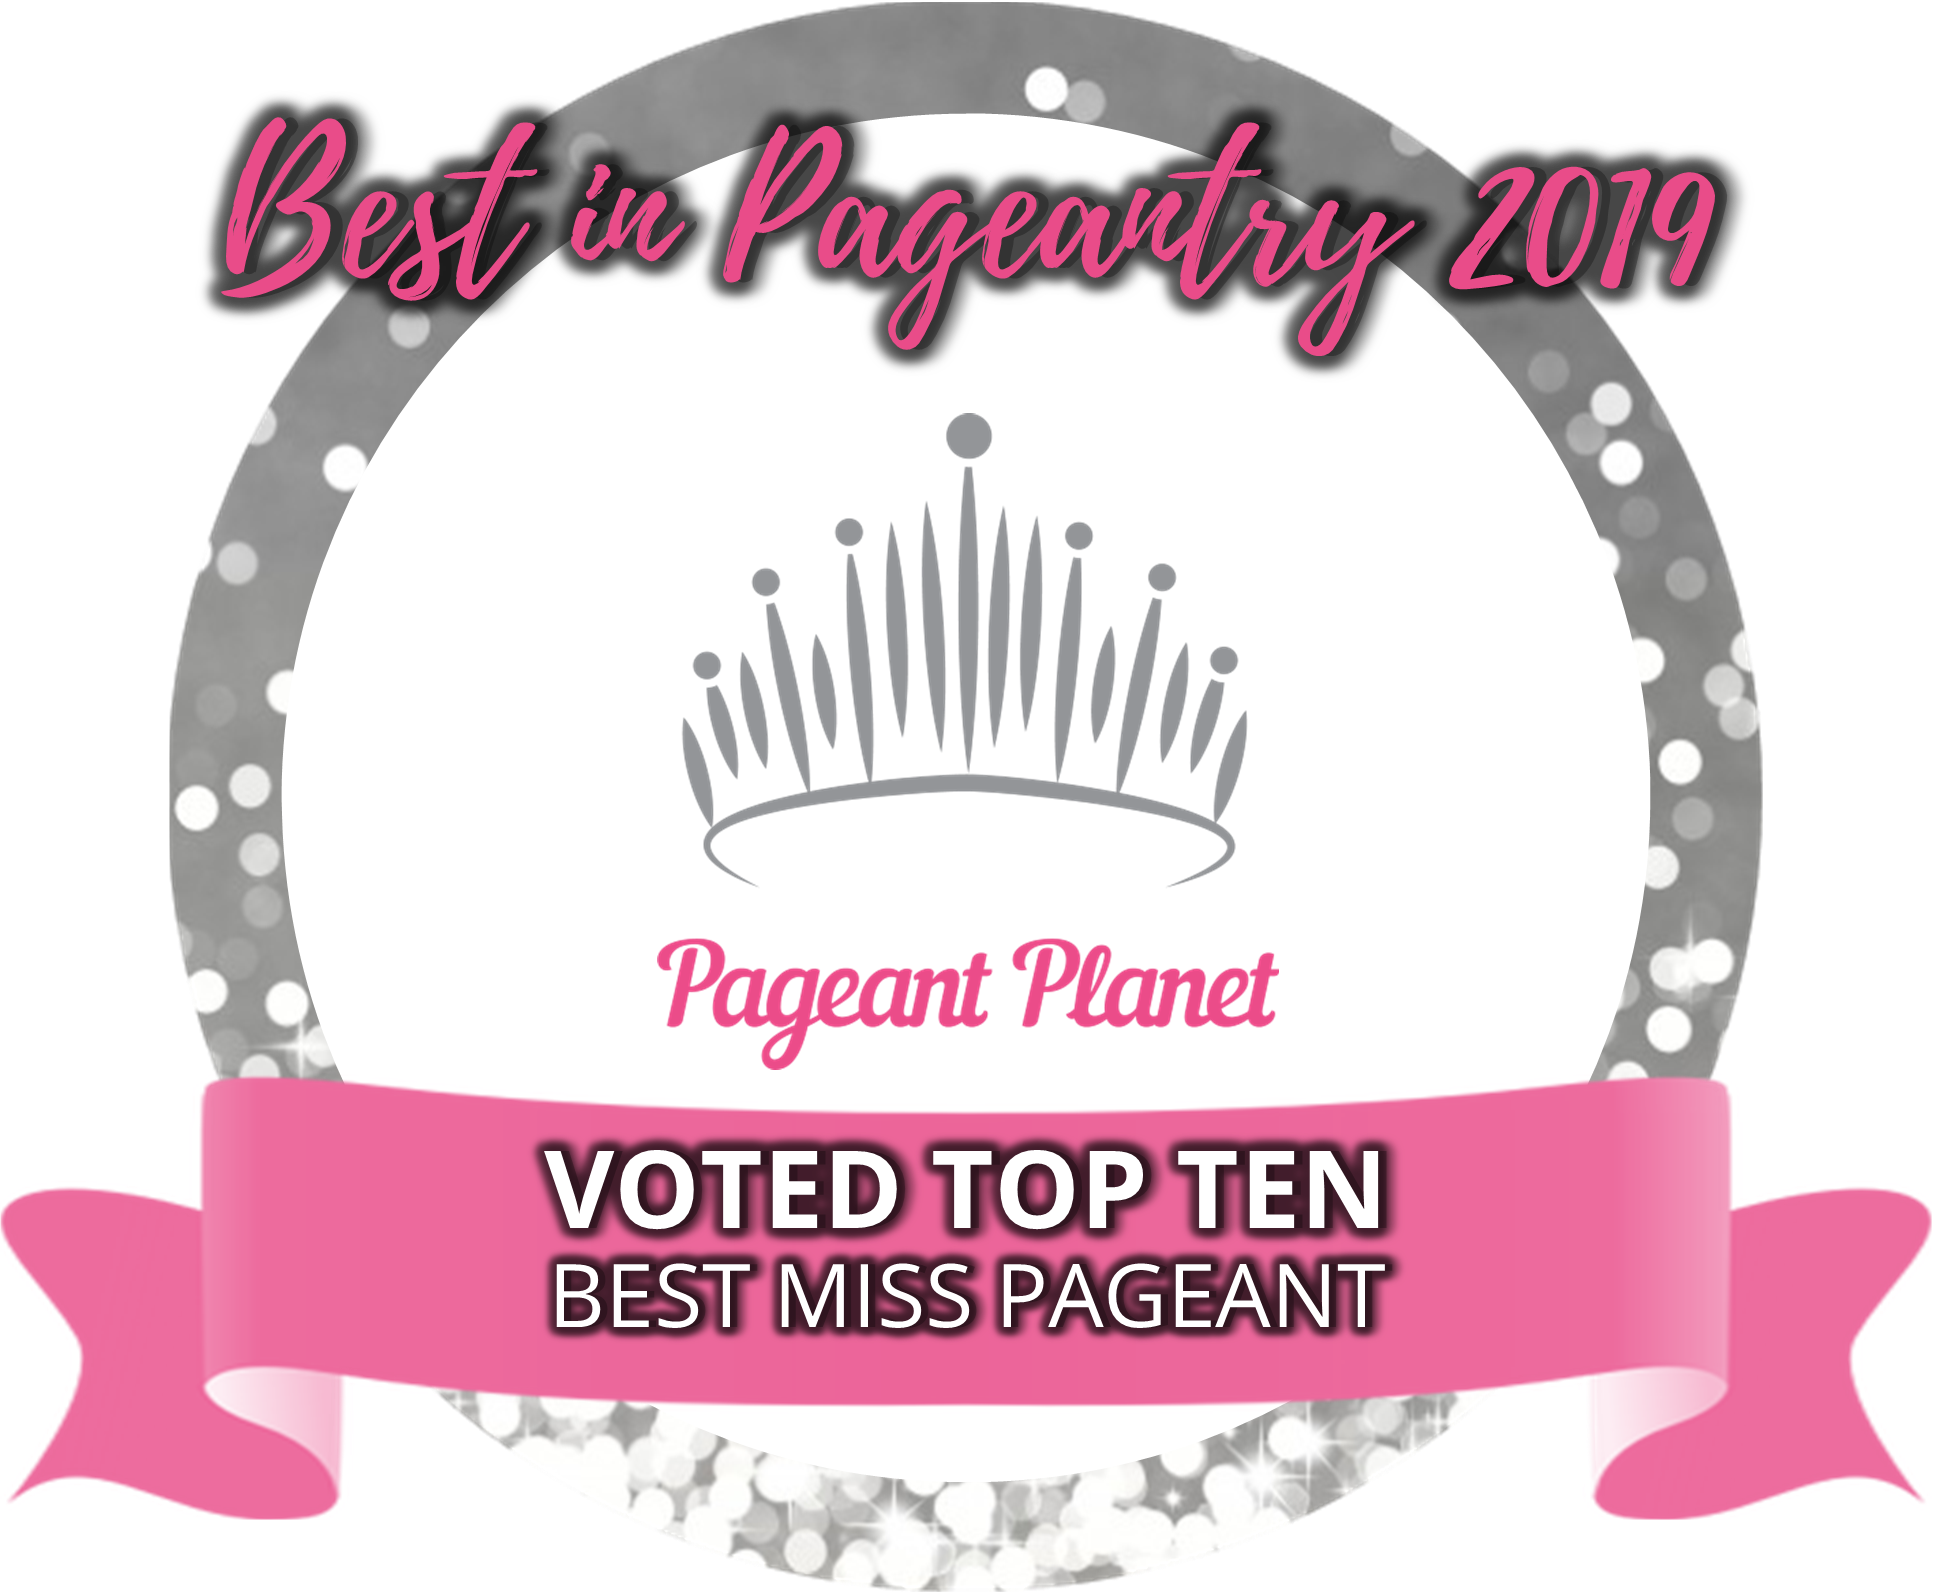 Top 10 Miss Pageants of 2019